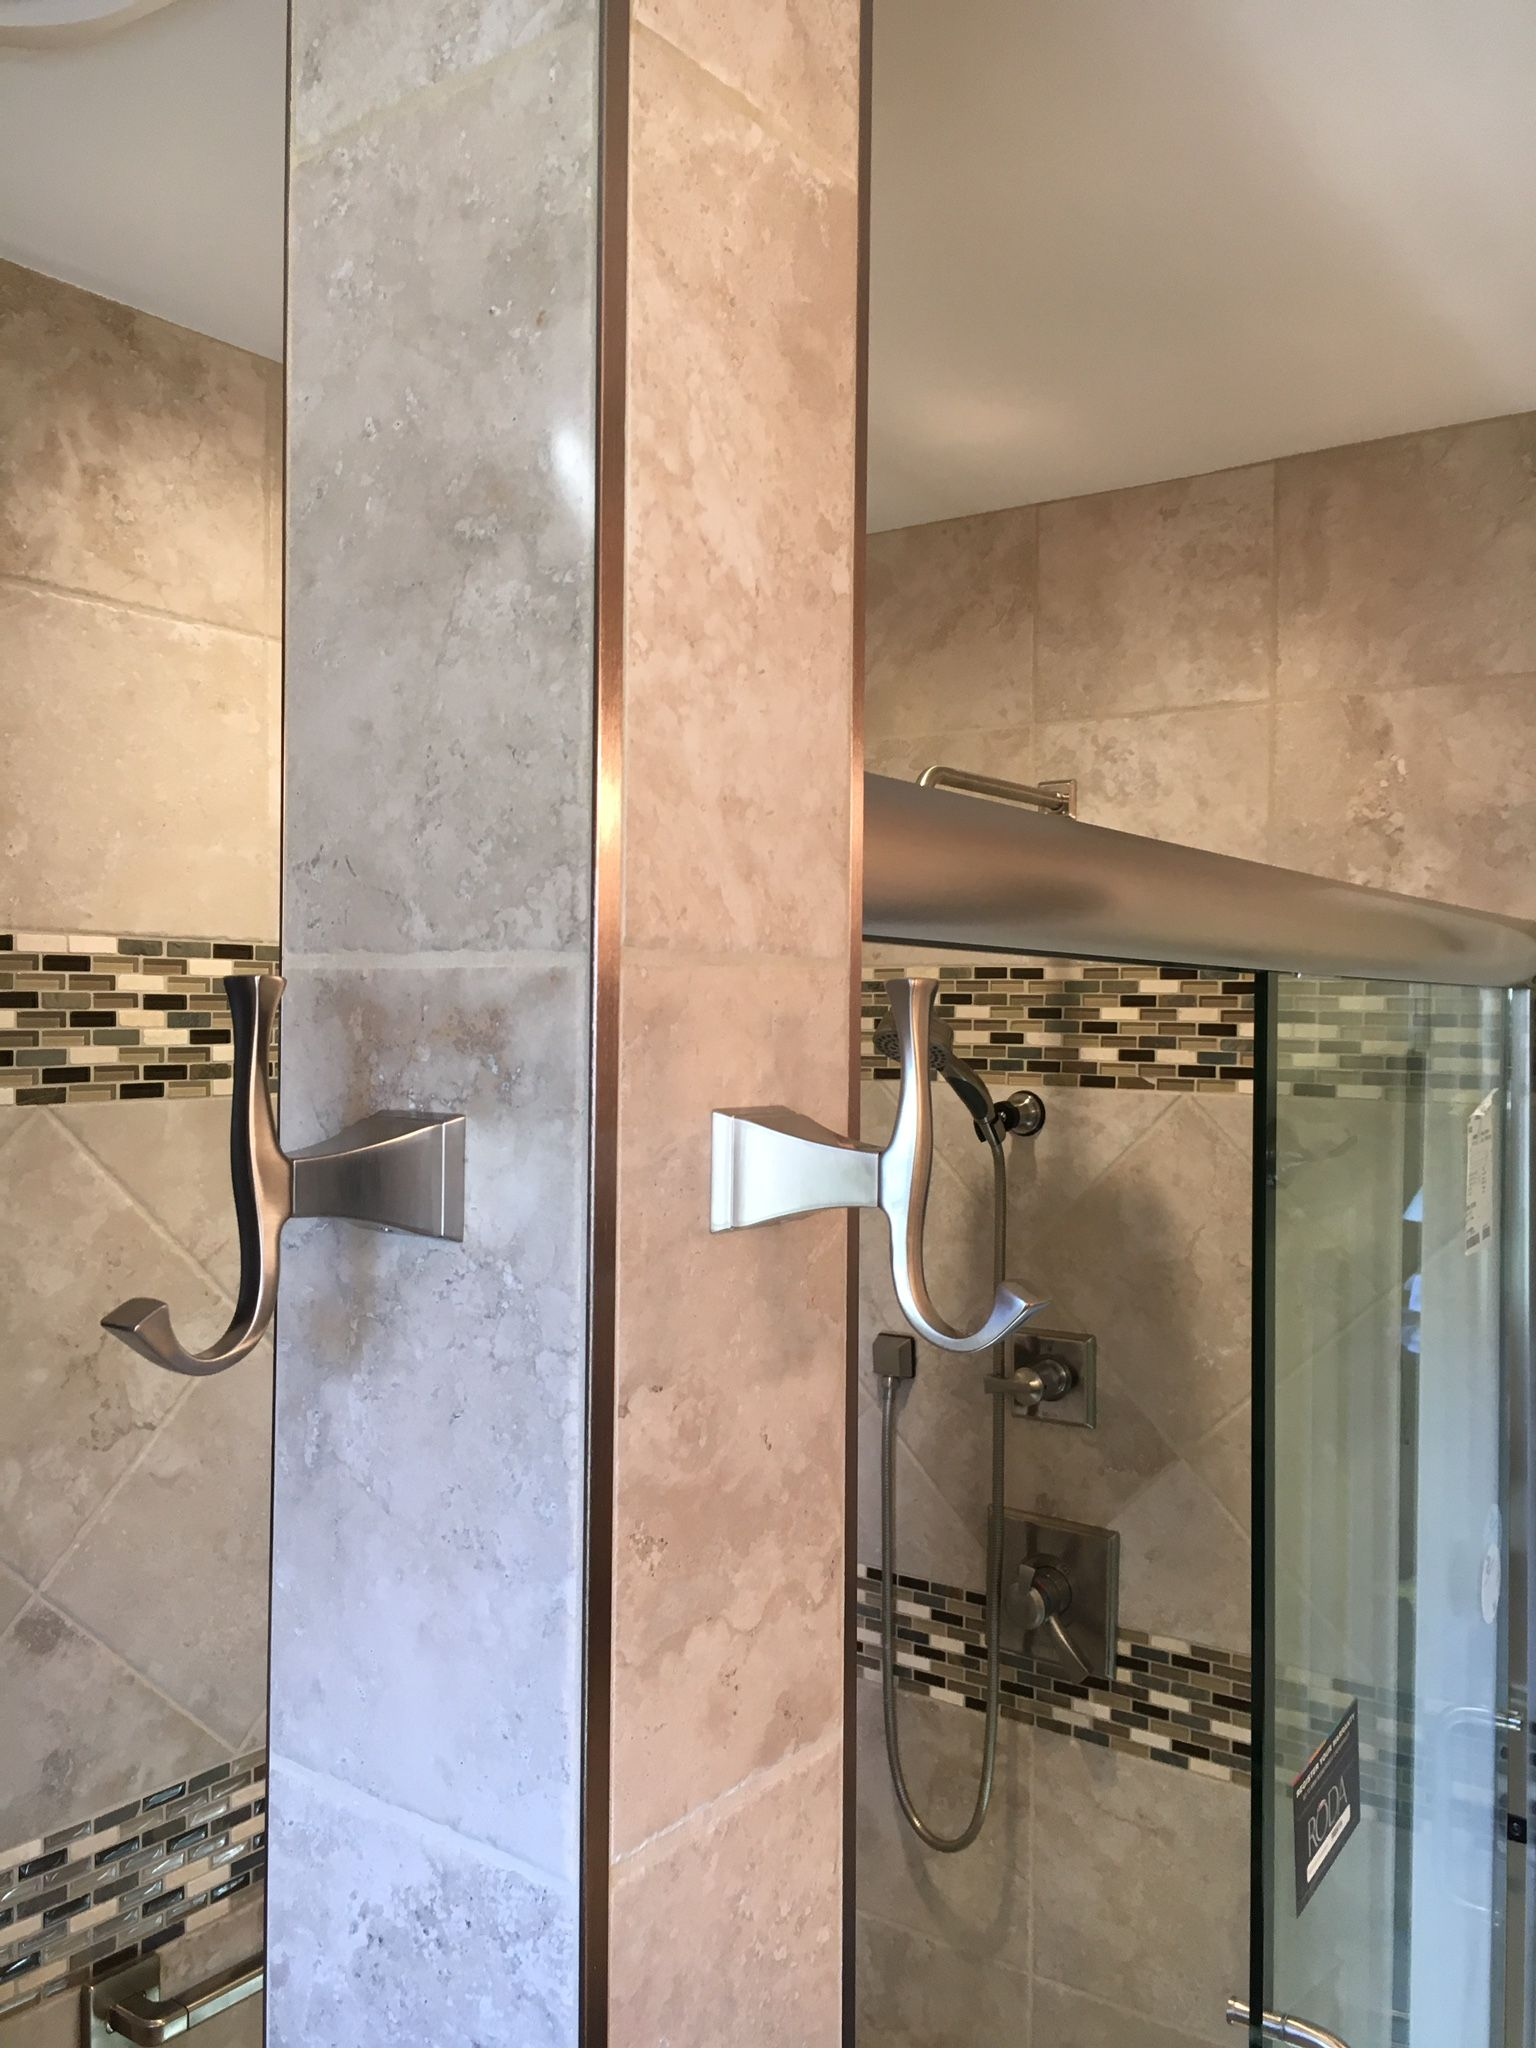 stainless steel bathroom accents with metal schluter strips to edge out tile tan tile neutral. Black Bedroom Furniture Sets. Home Design Ideas